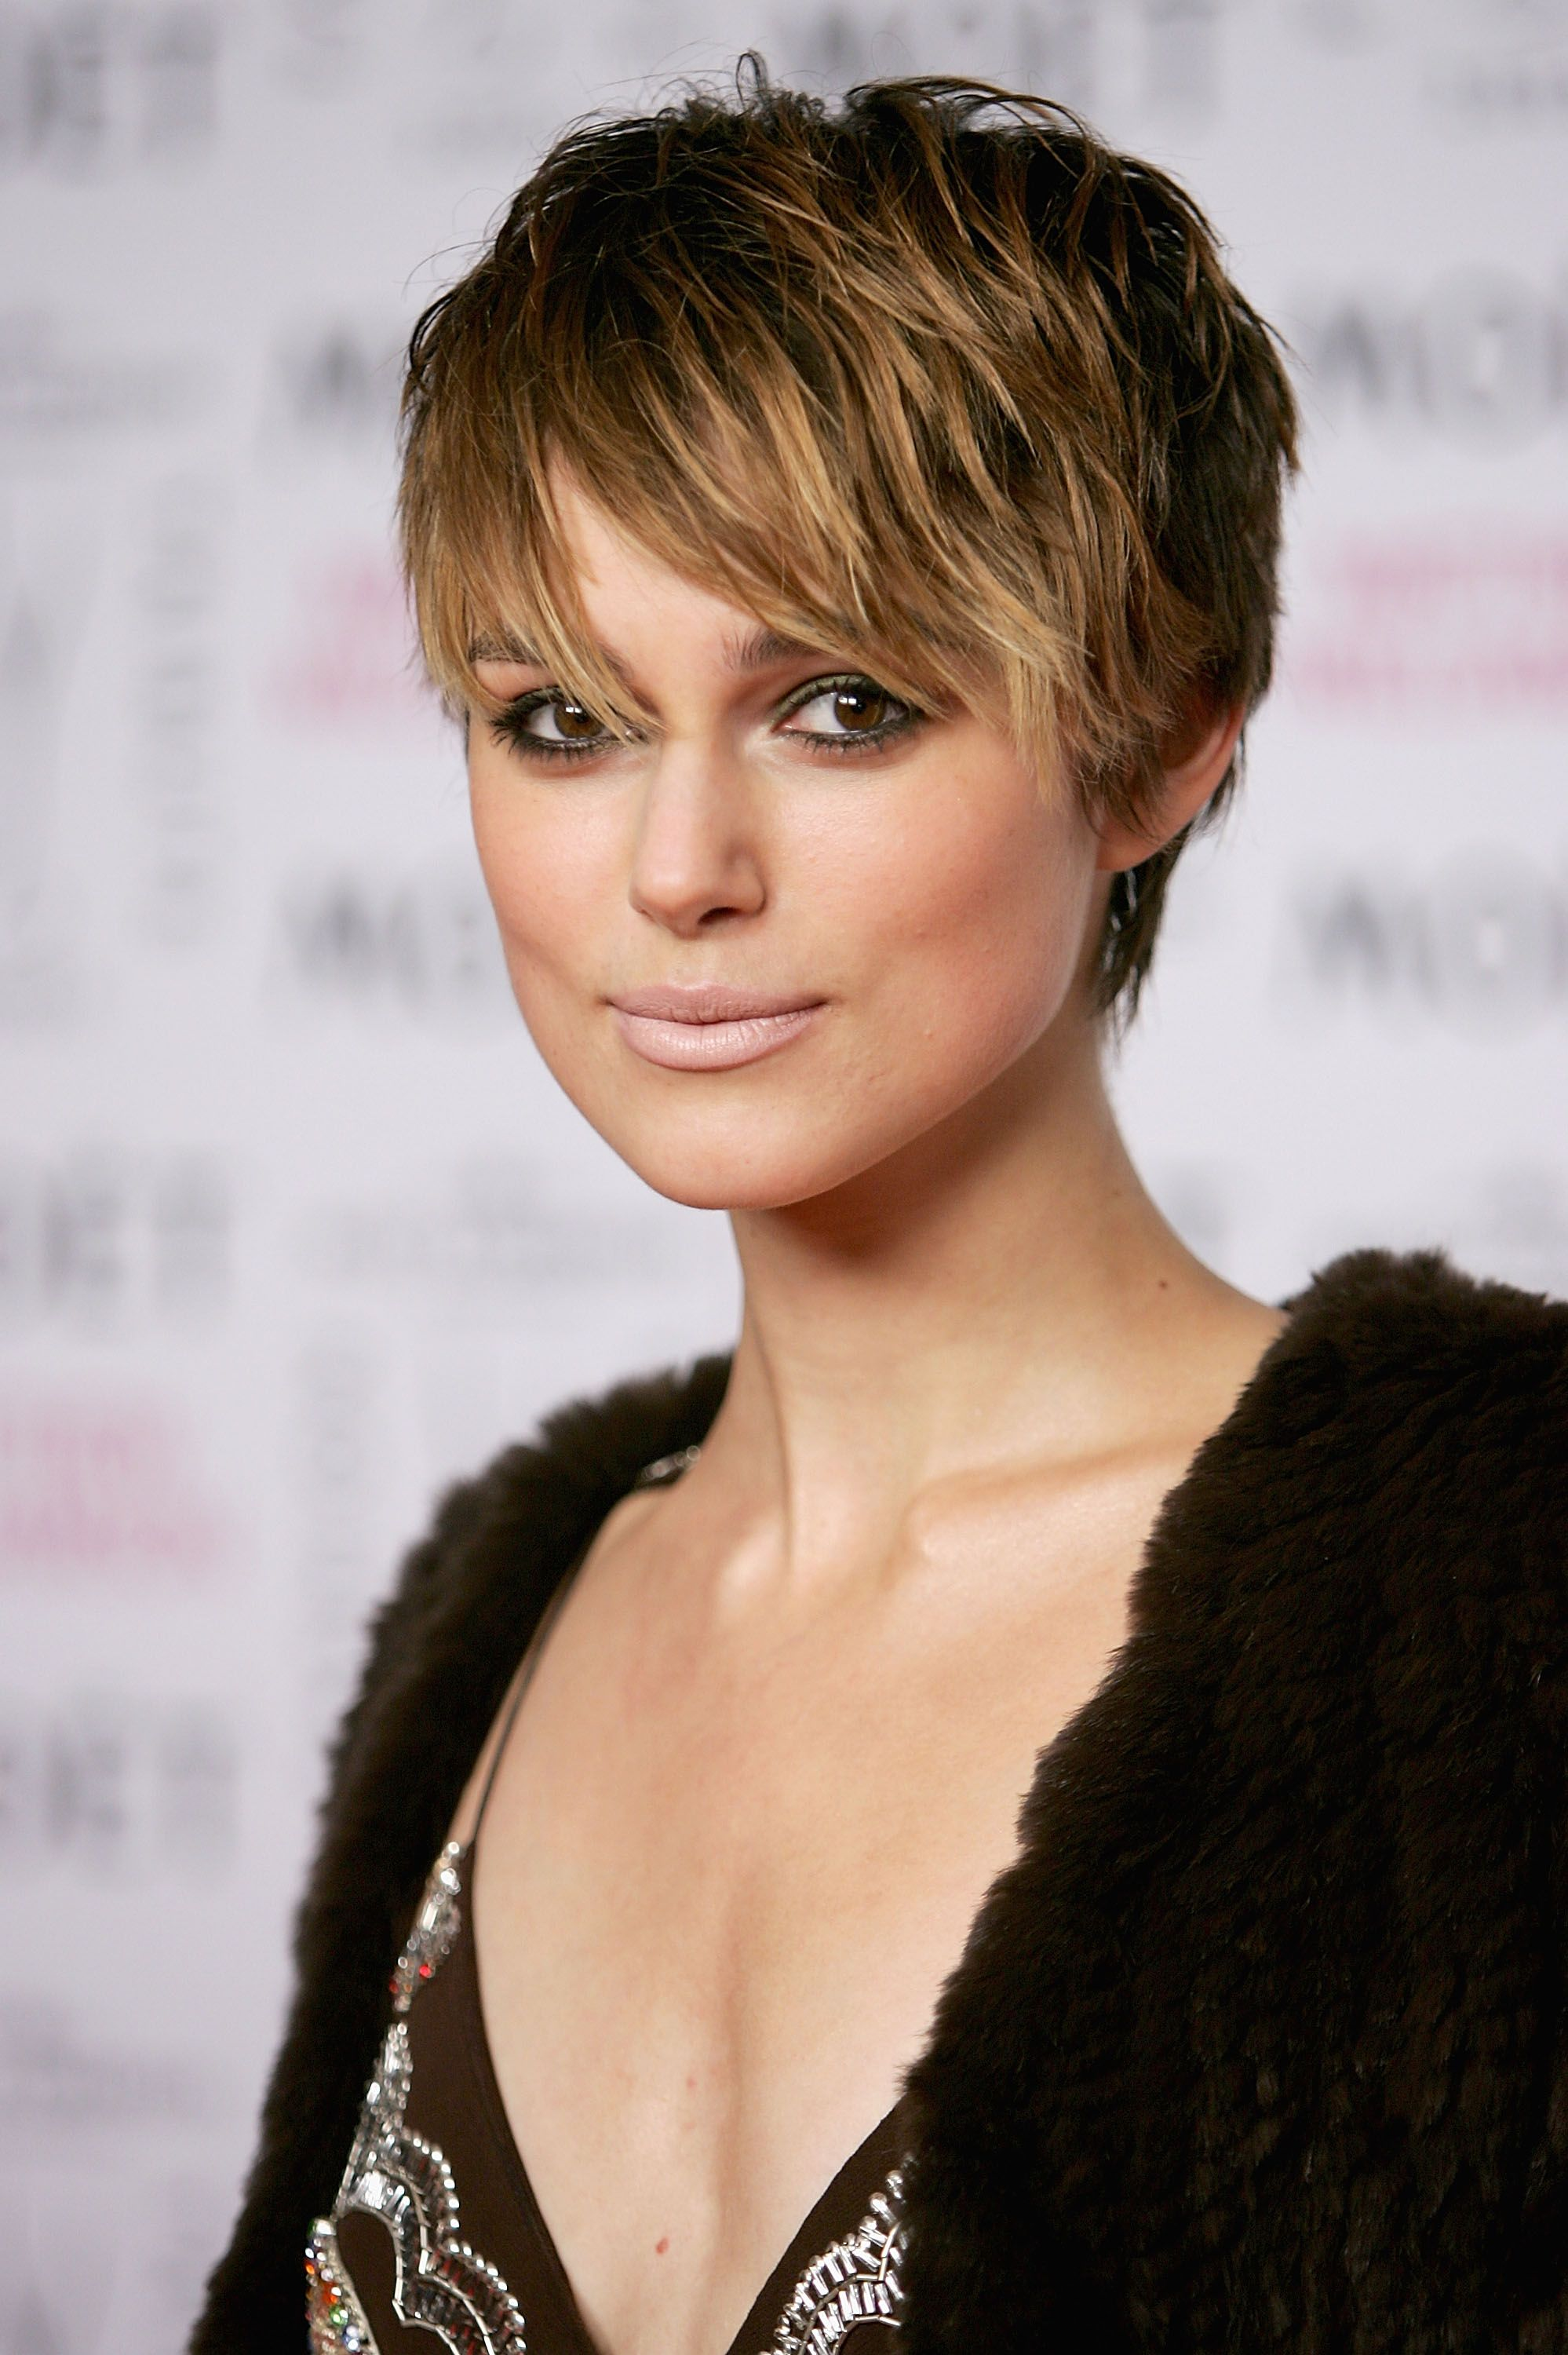 50 celebrity pixie cuts so good you'll want to go for it | pinterest